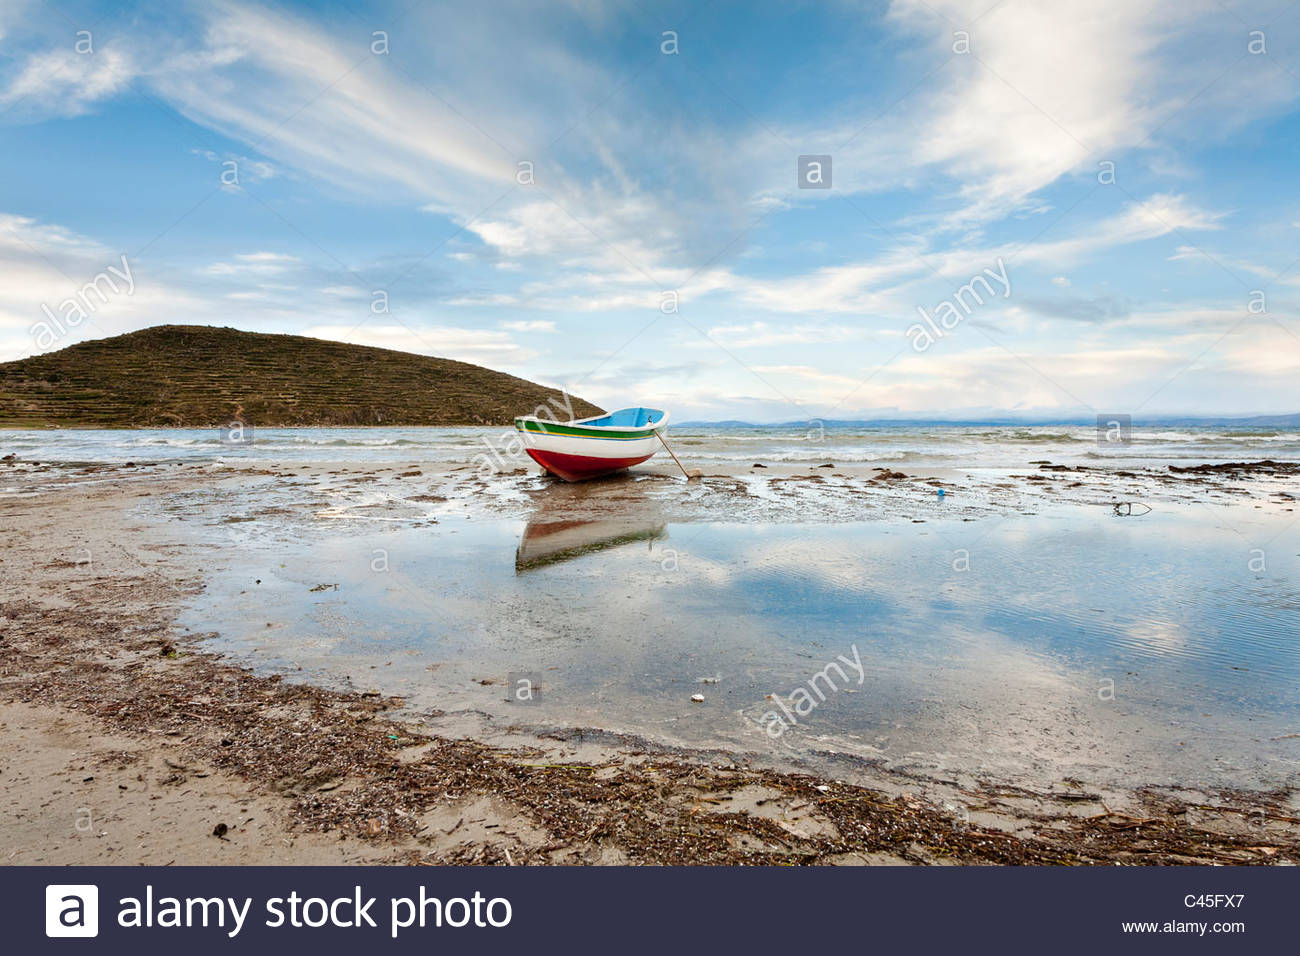 A small boat on the beach in late afternoon, Comunidad Cha'llapampa, Isla del Sol, Lake Titicaca, La Paz Department, - Stock Image